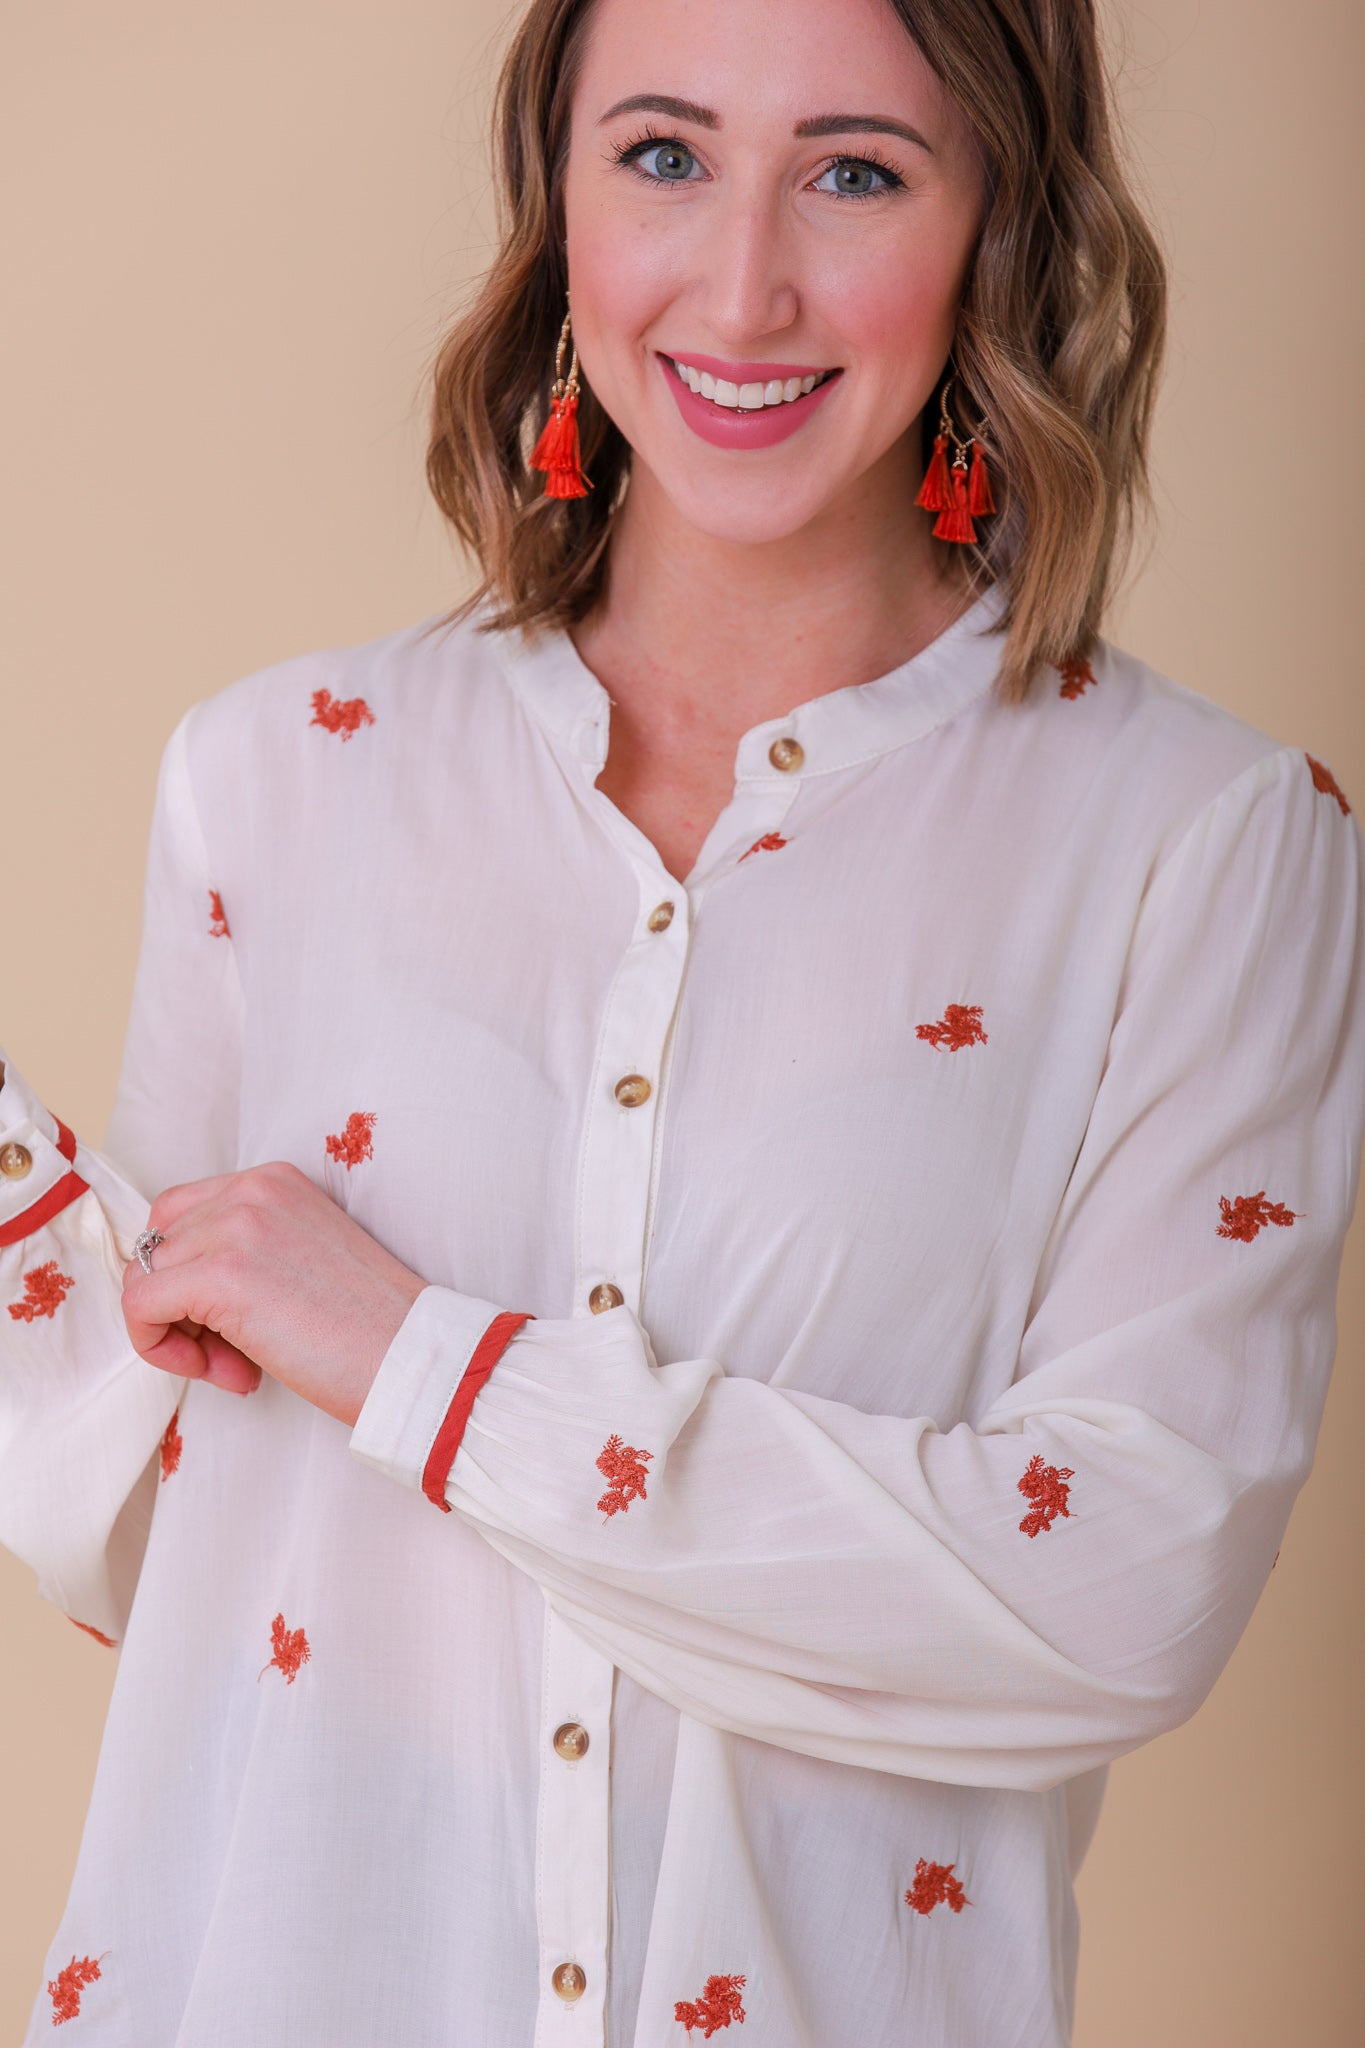 Daisy Chain Floral Embroidered Button Up Top - Tops - Wight Elephant Boutique